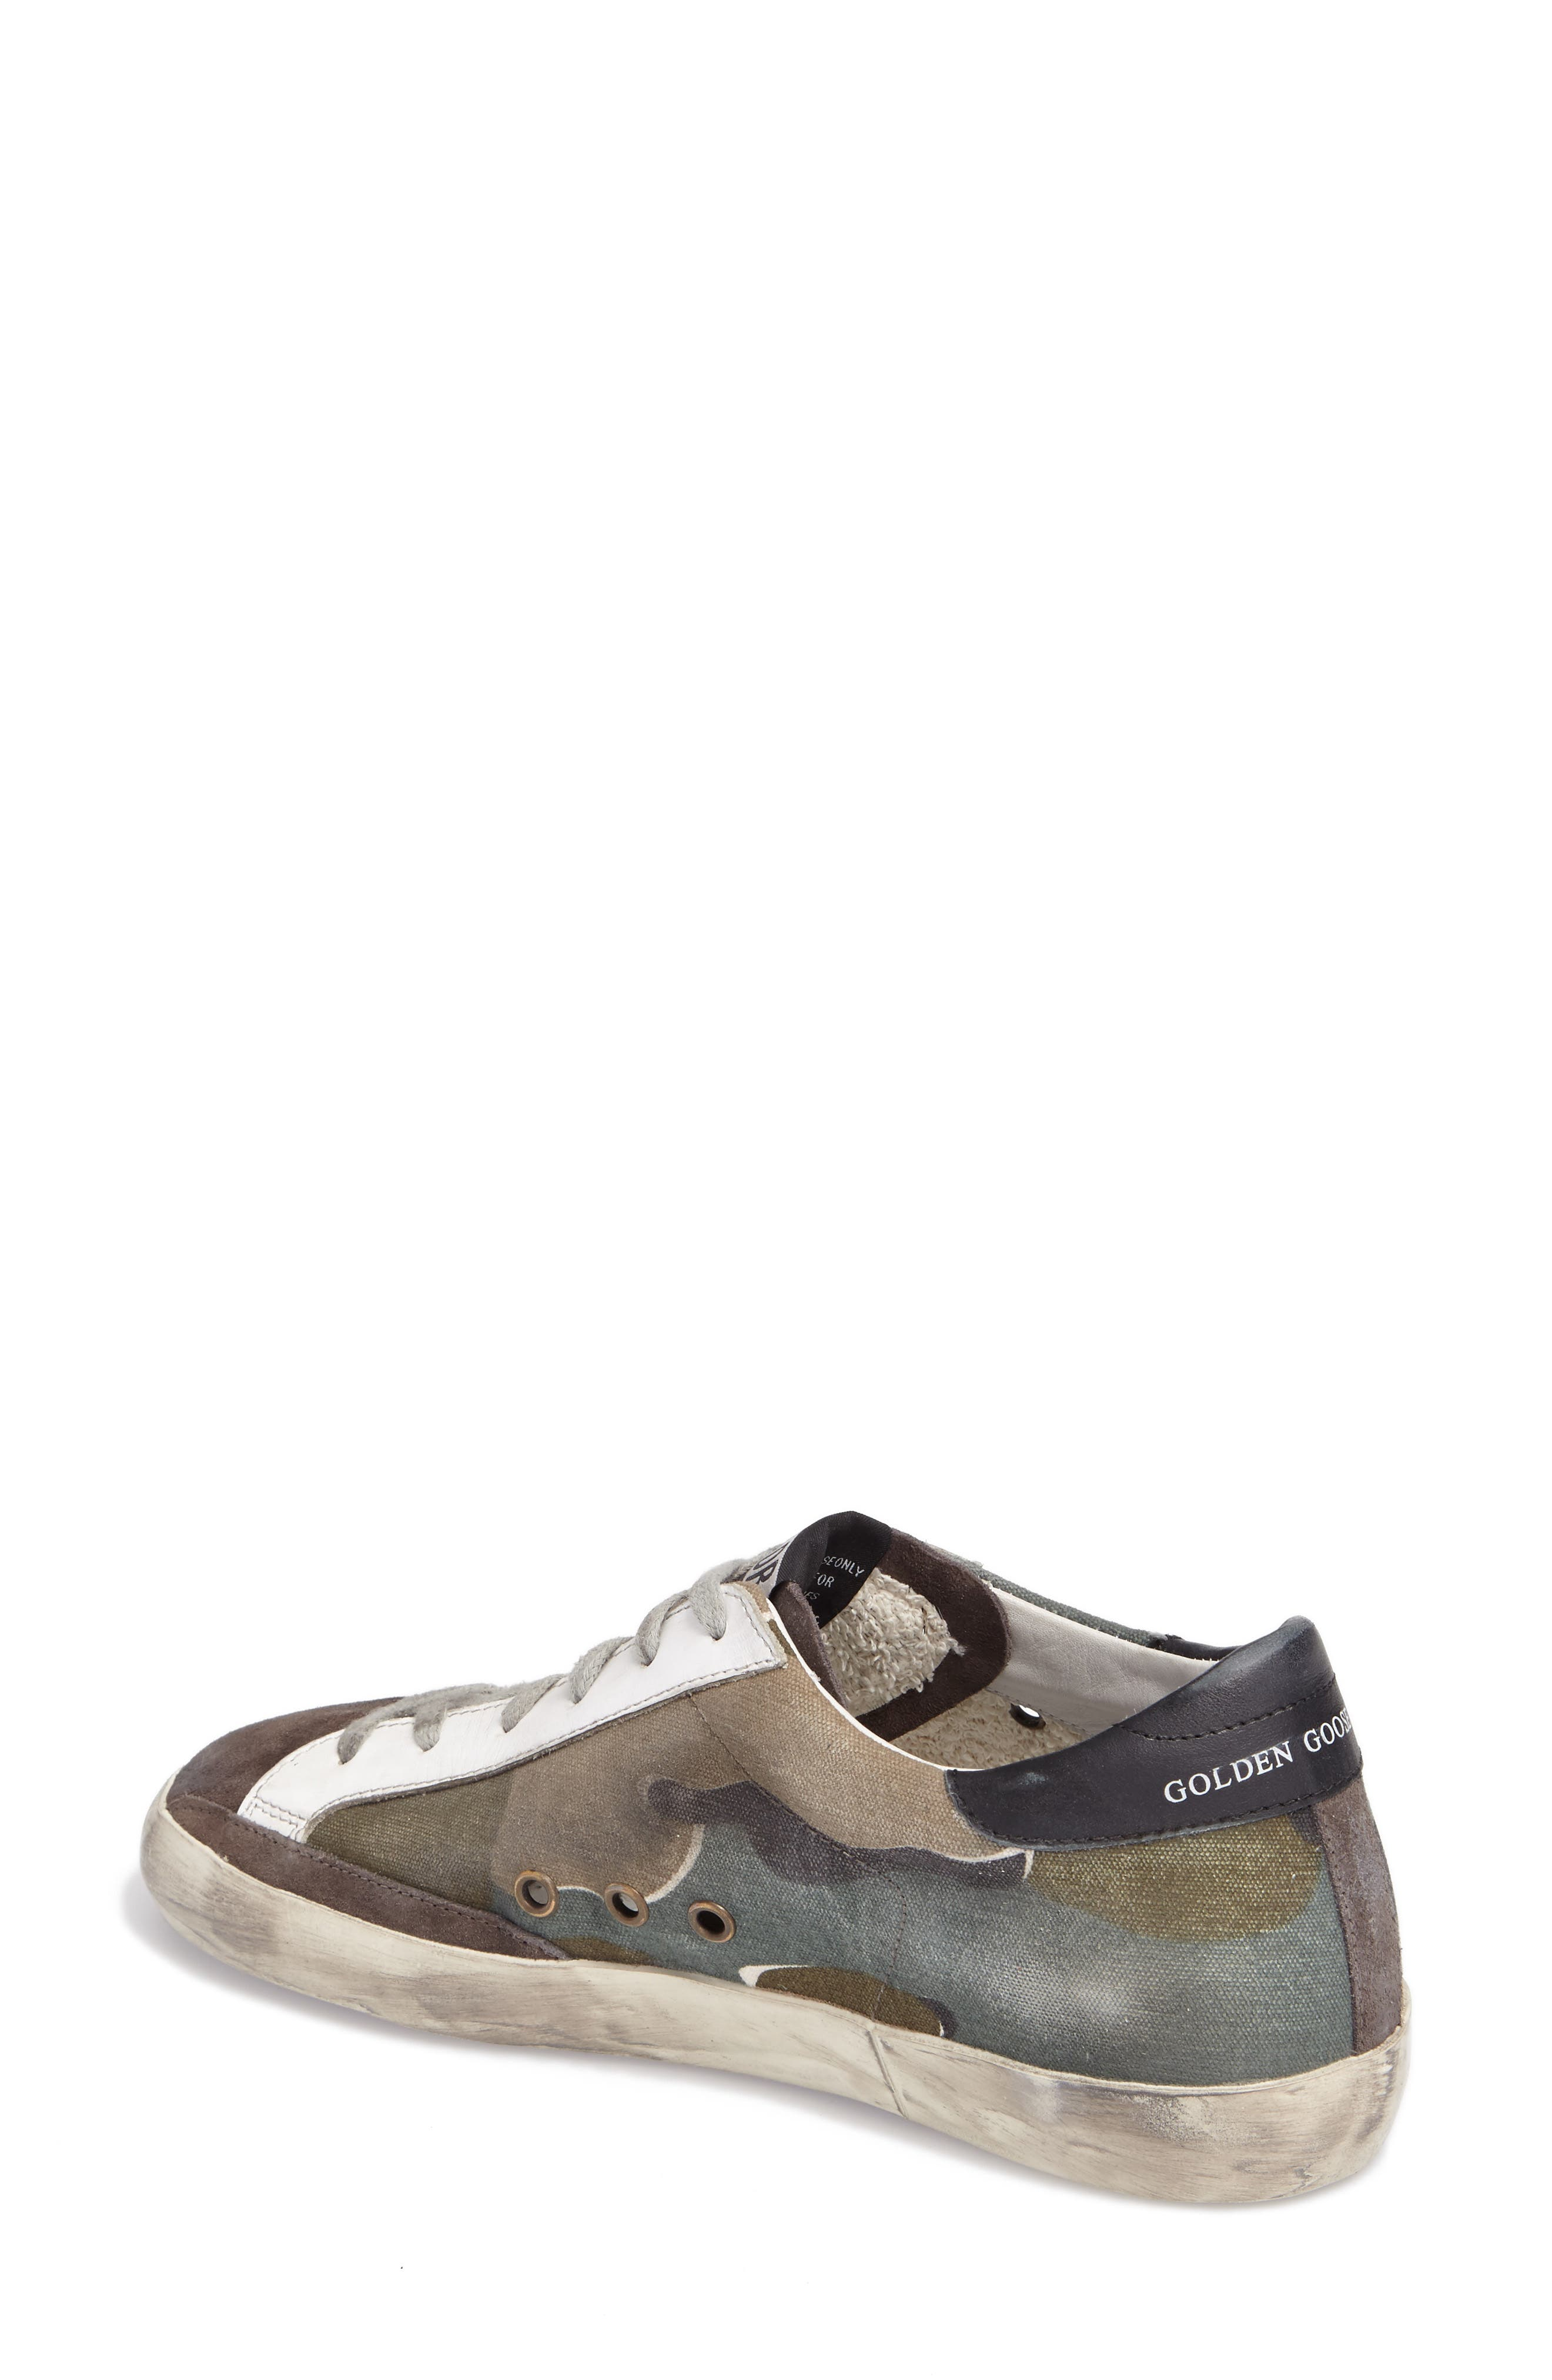 GOLDEN GOOSE,                             Superstar Low Top Sneaker,                             Alternate thumbnail 2, color,                             020